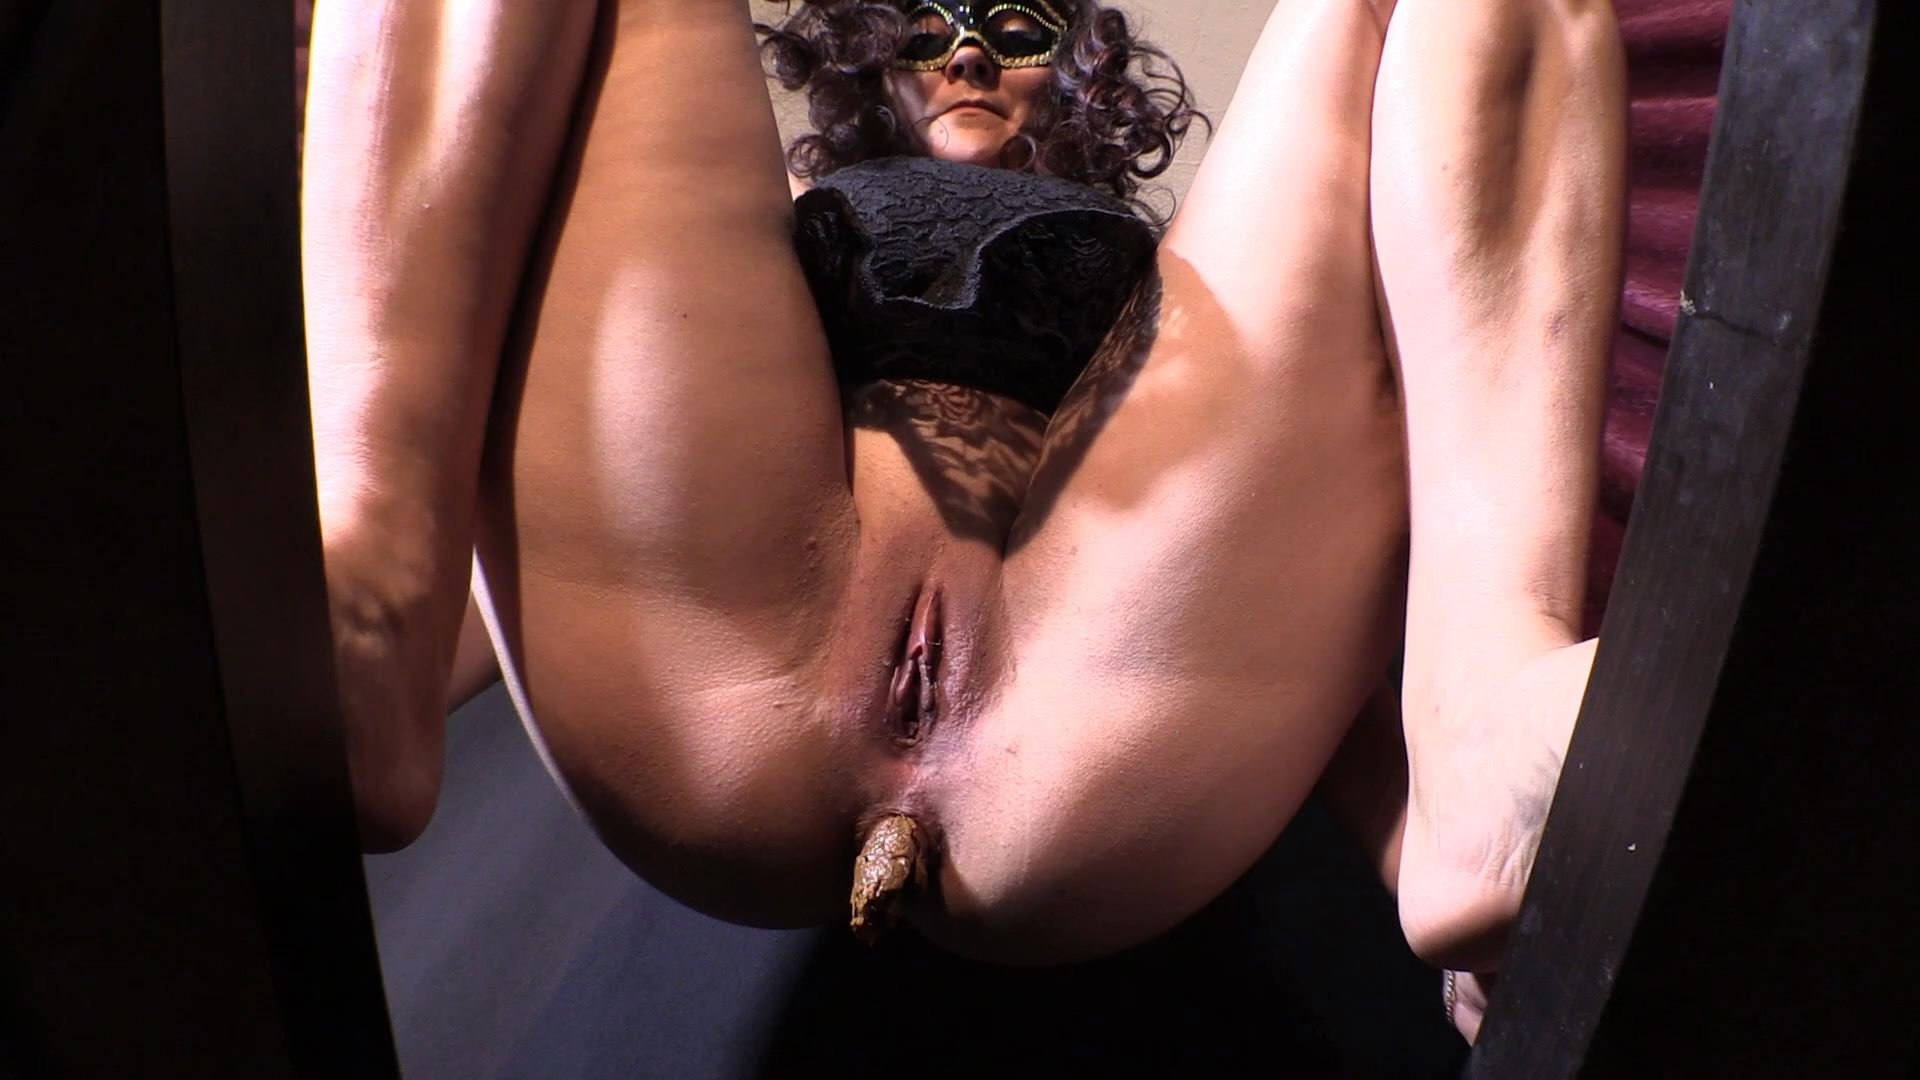 [YEZZCLIPS / SHIT FROM THE GODDESS DIANA] Mistress Diana scat spitting POV. Featuring: Goddess Diana [FULL HD][1080p][MP4]